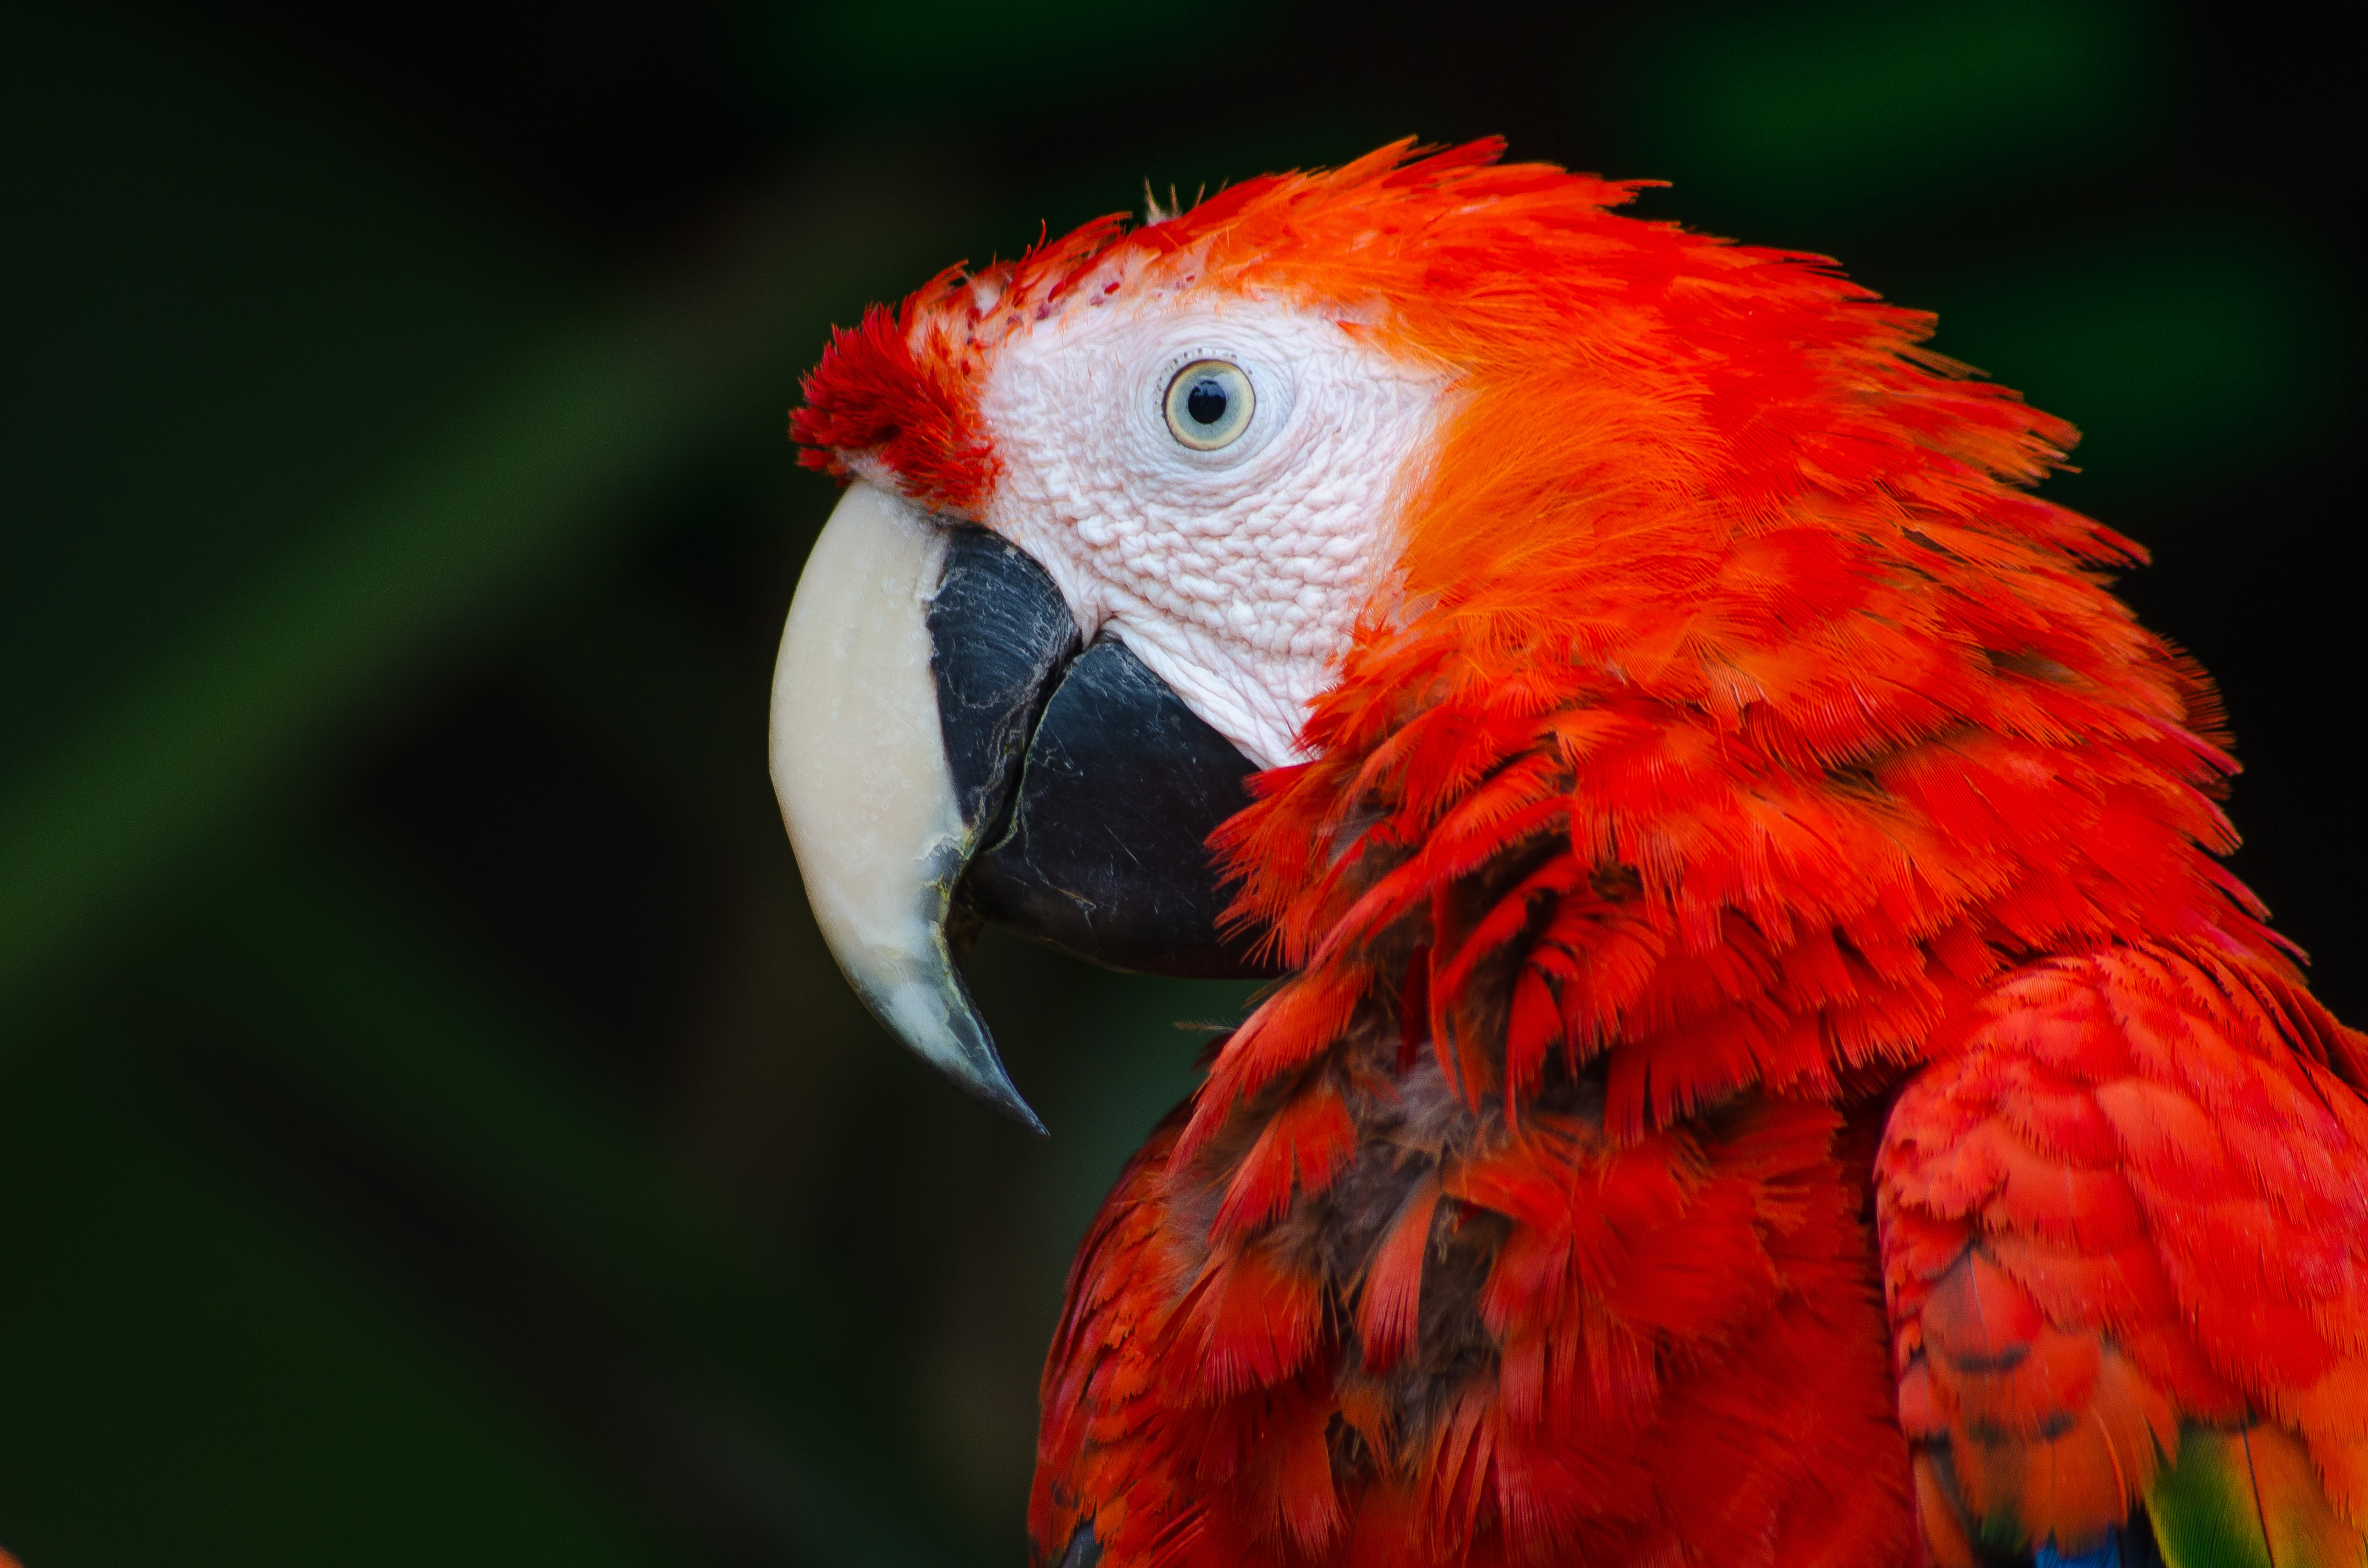 Macro of a red parrot with blue eyes on a grassy backdrop